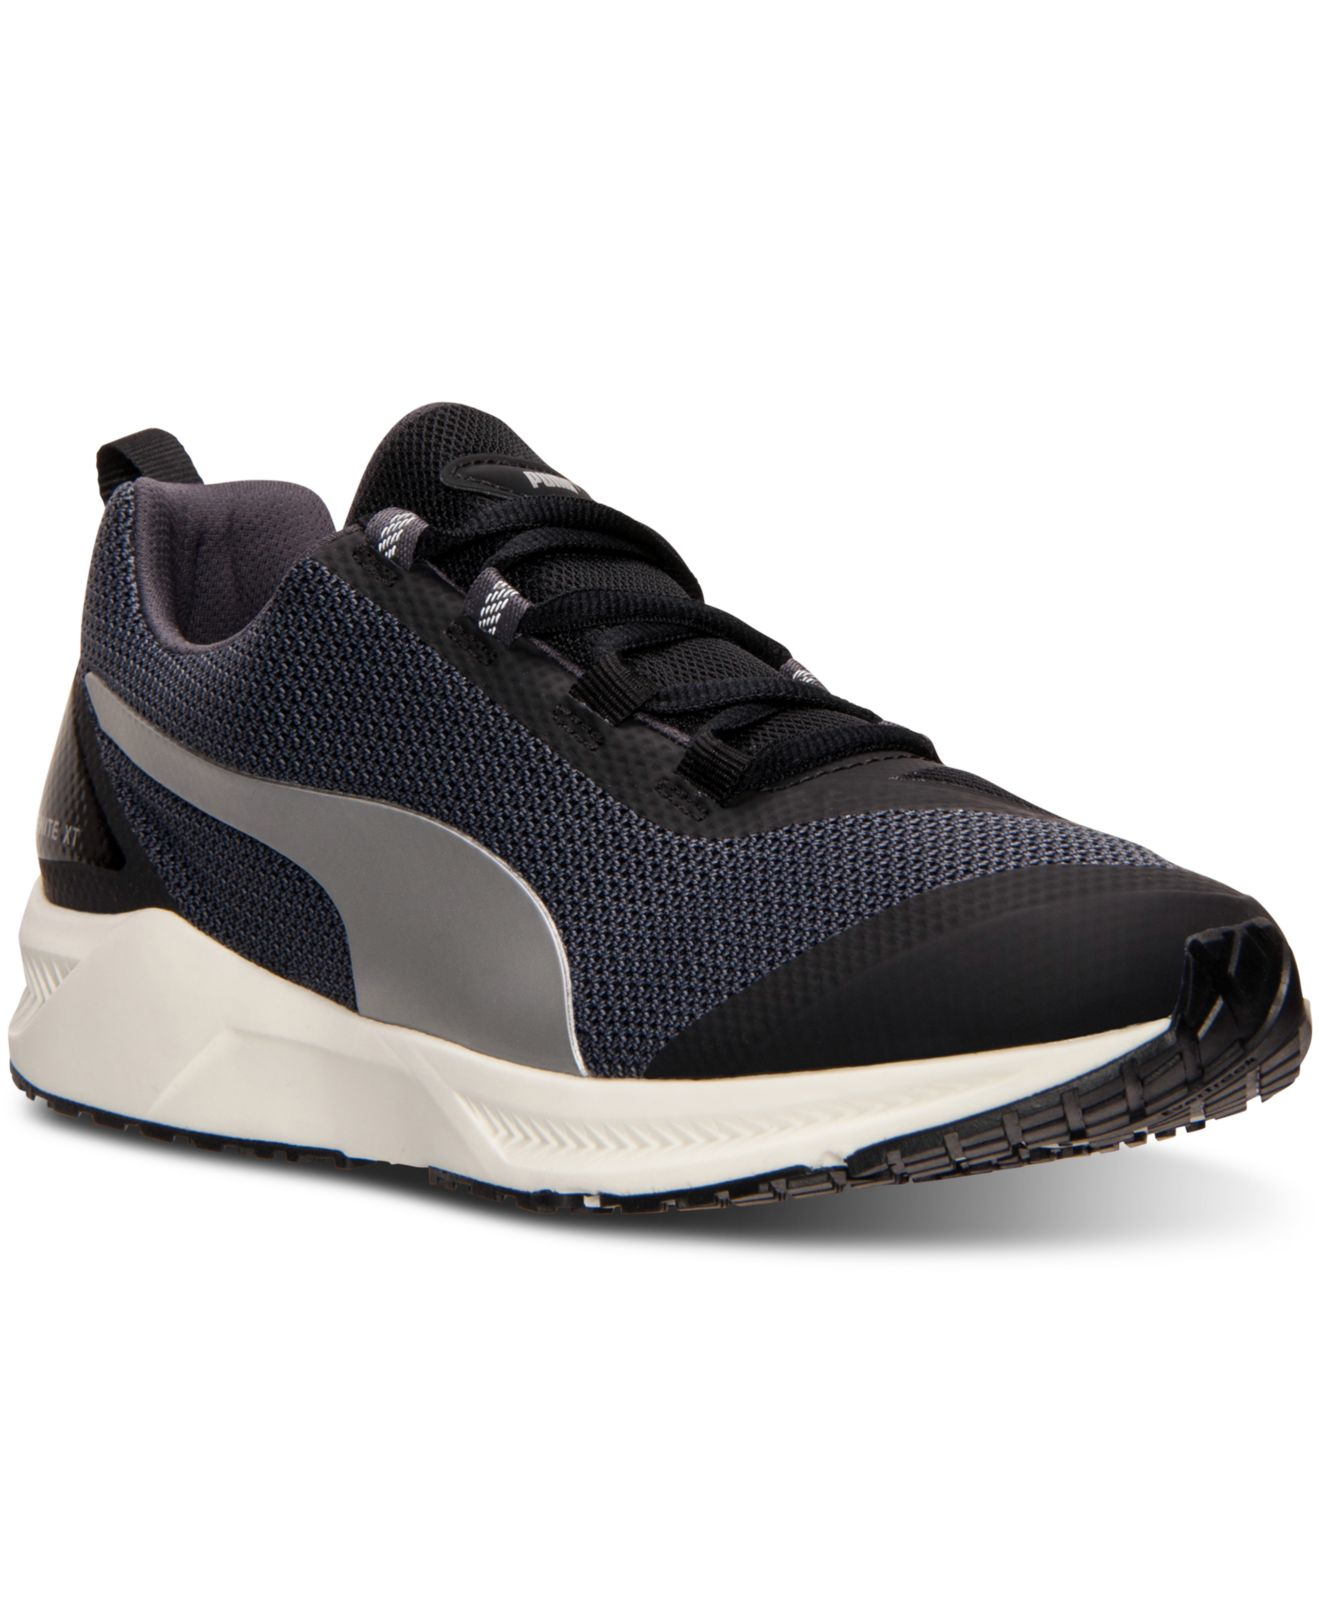 88dd256a8a76ec Lyst - PUMA Women s Ignite Xt Running Sneakers From Finish Line in Black